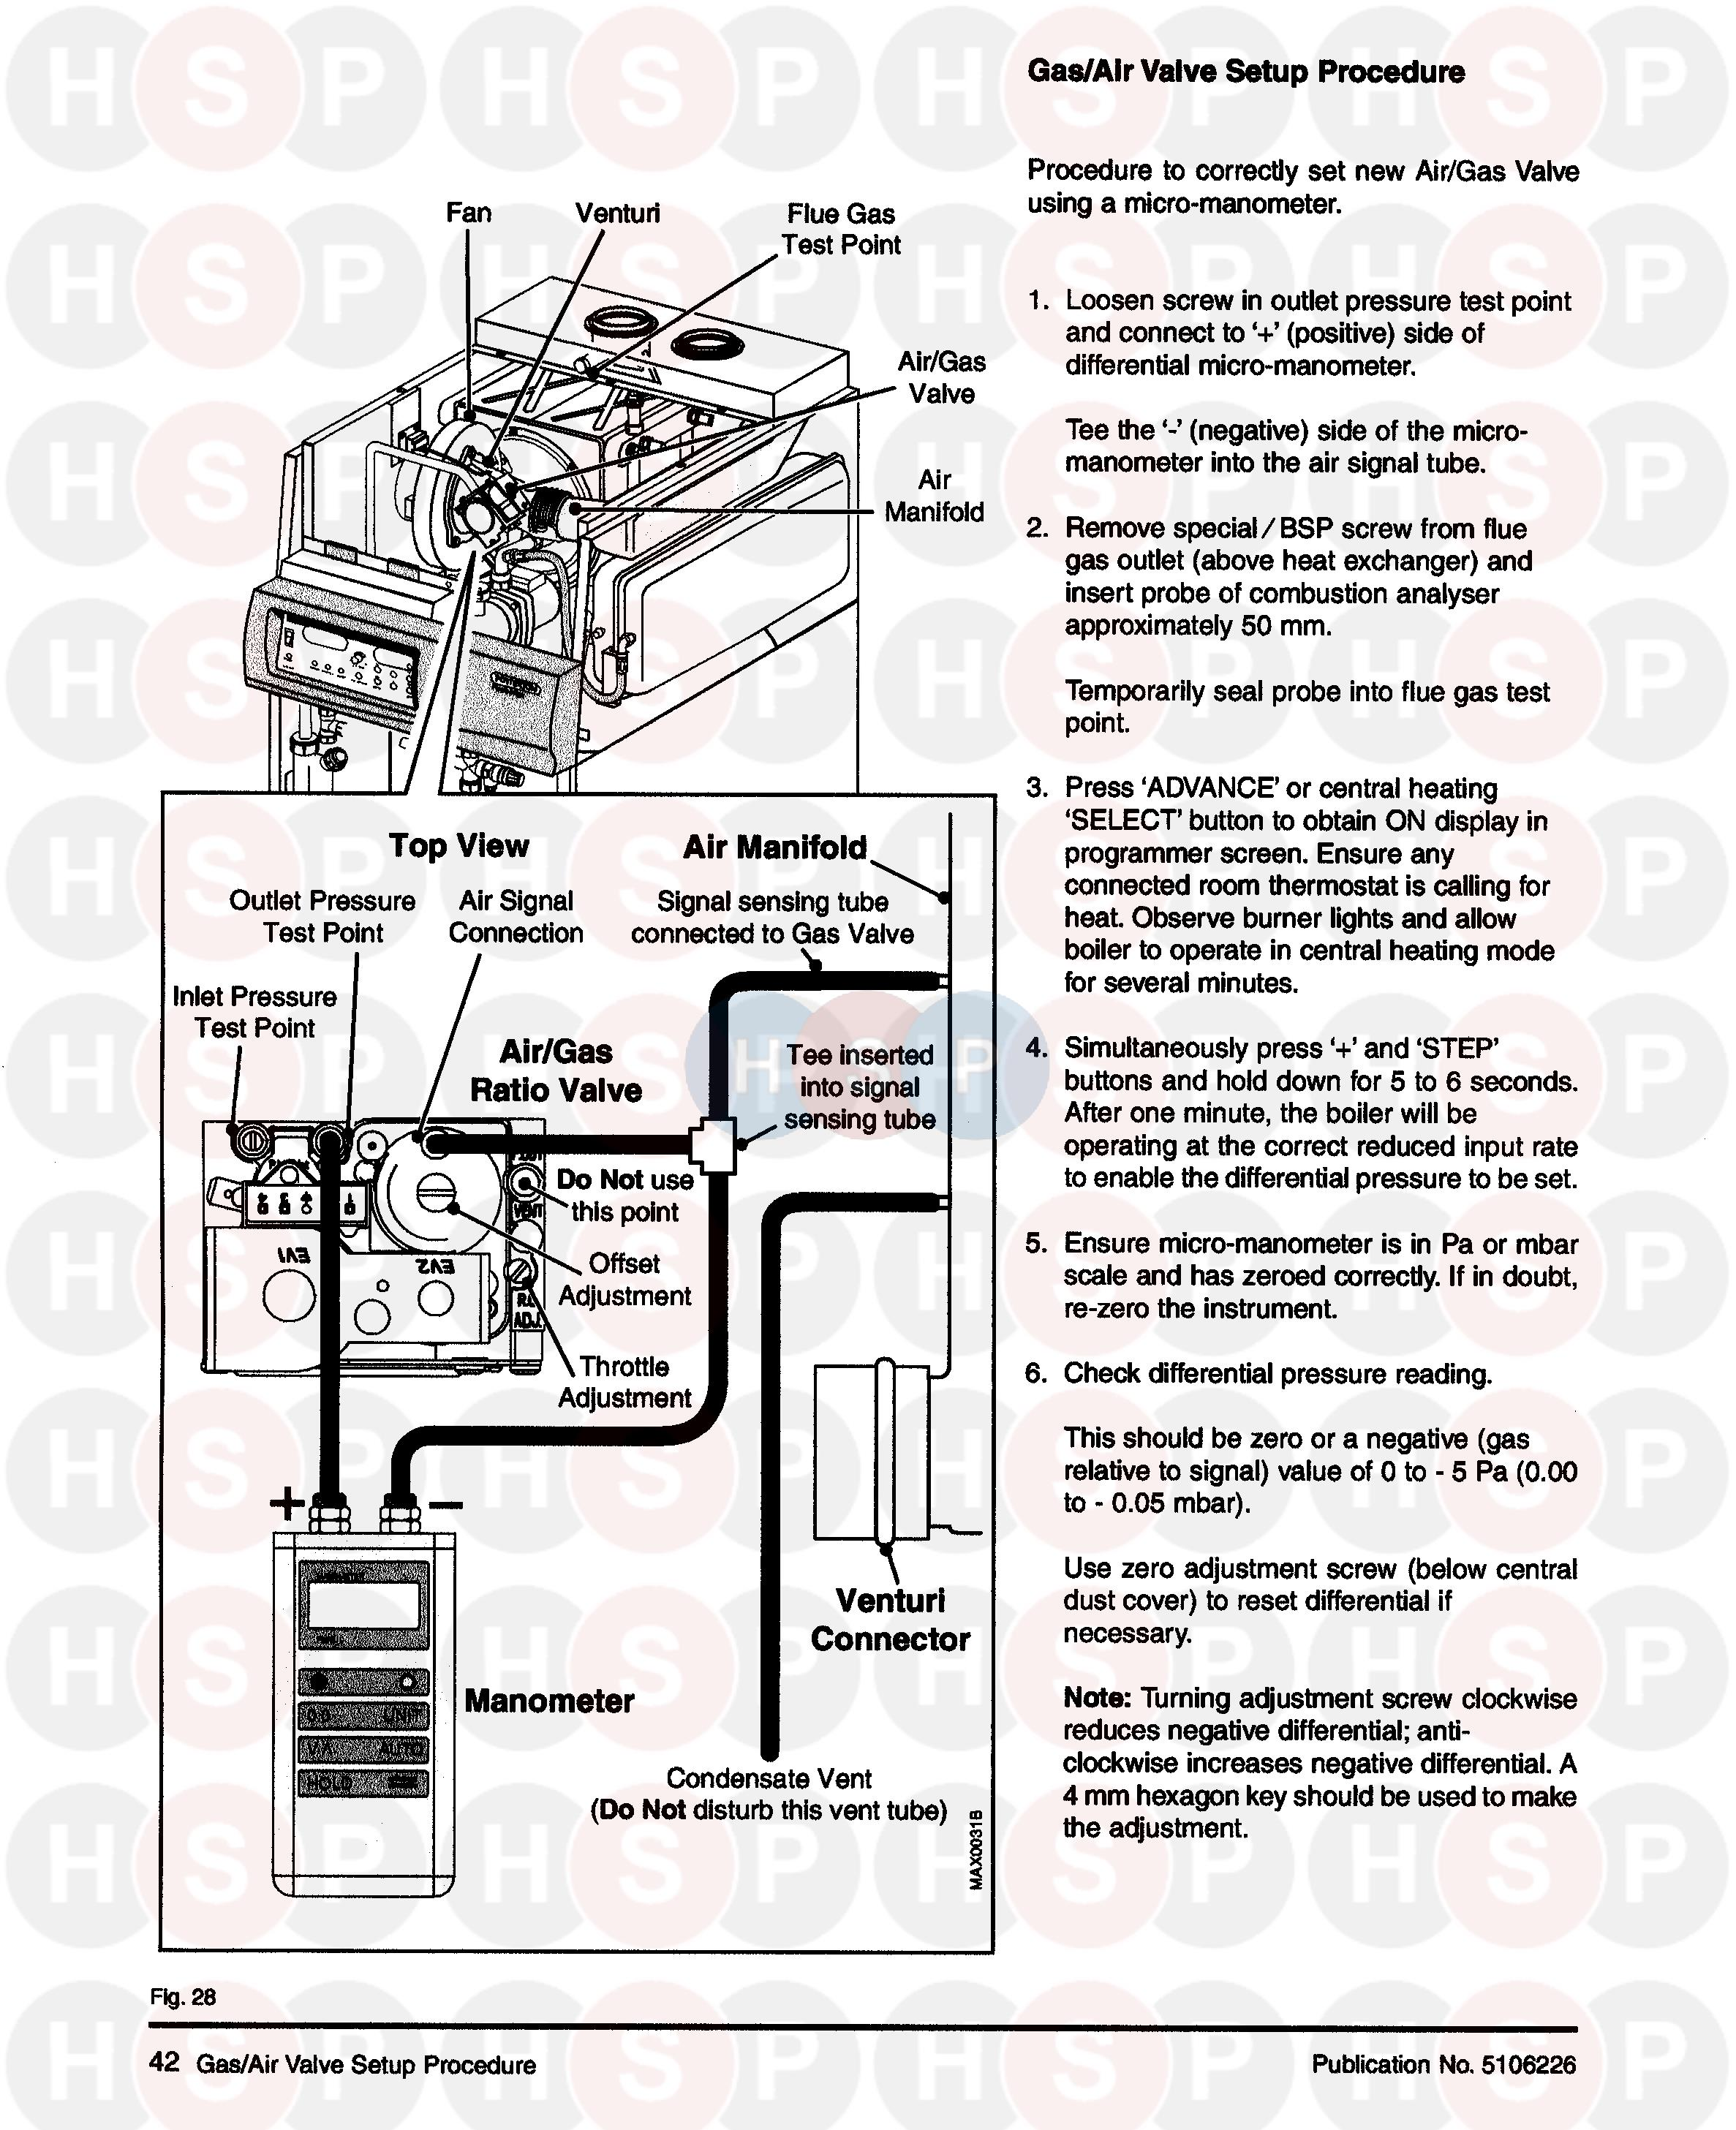 Potterton powermax 150 he service fault finding 3 diagram click the diagram to open it on a new page asfbconference2016 Images